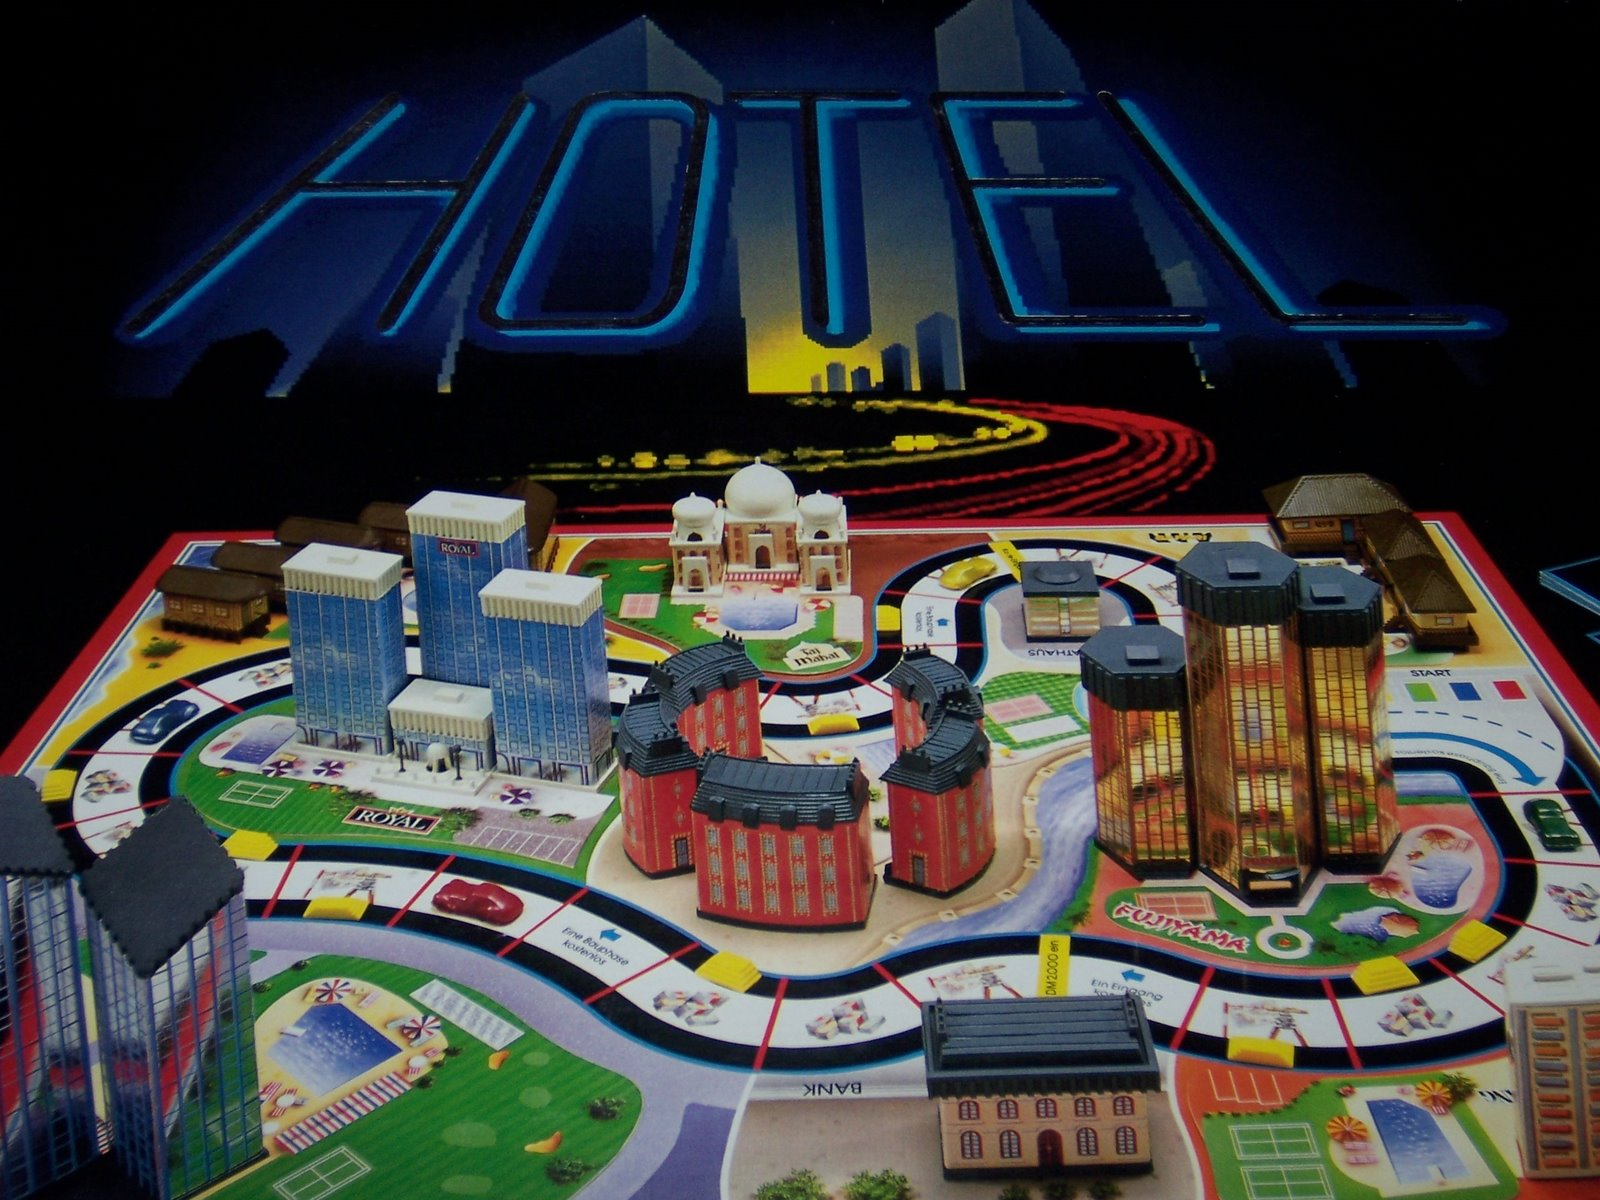 Hotel Management: Business Game - Free online games at ...